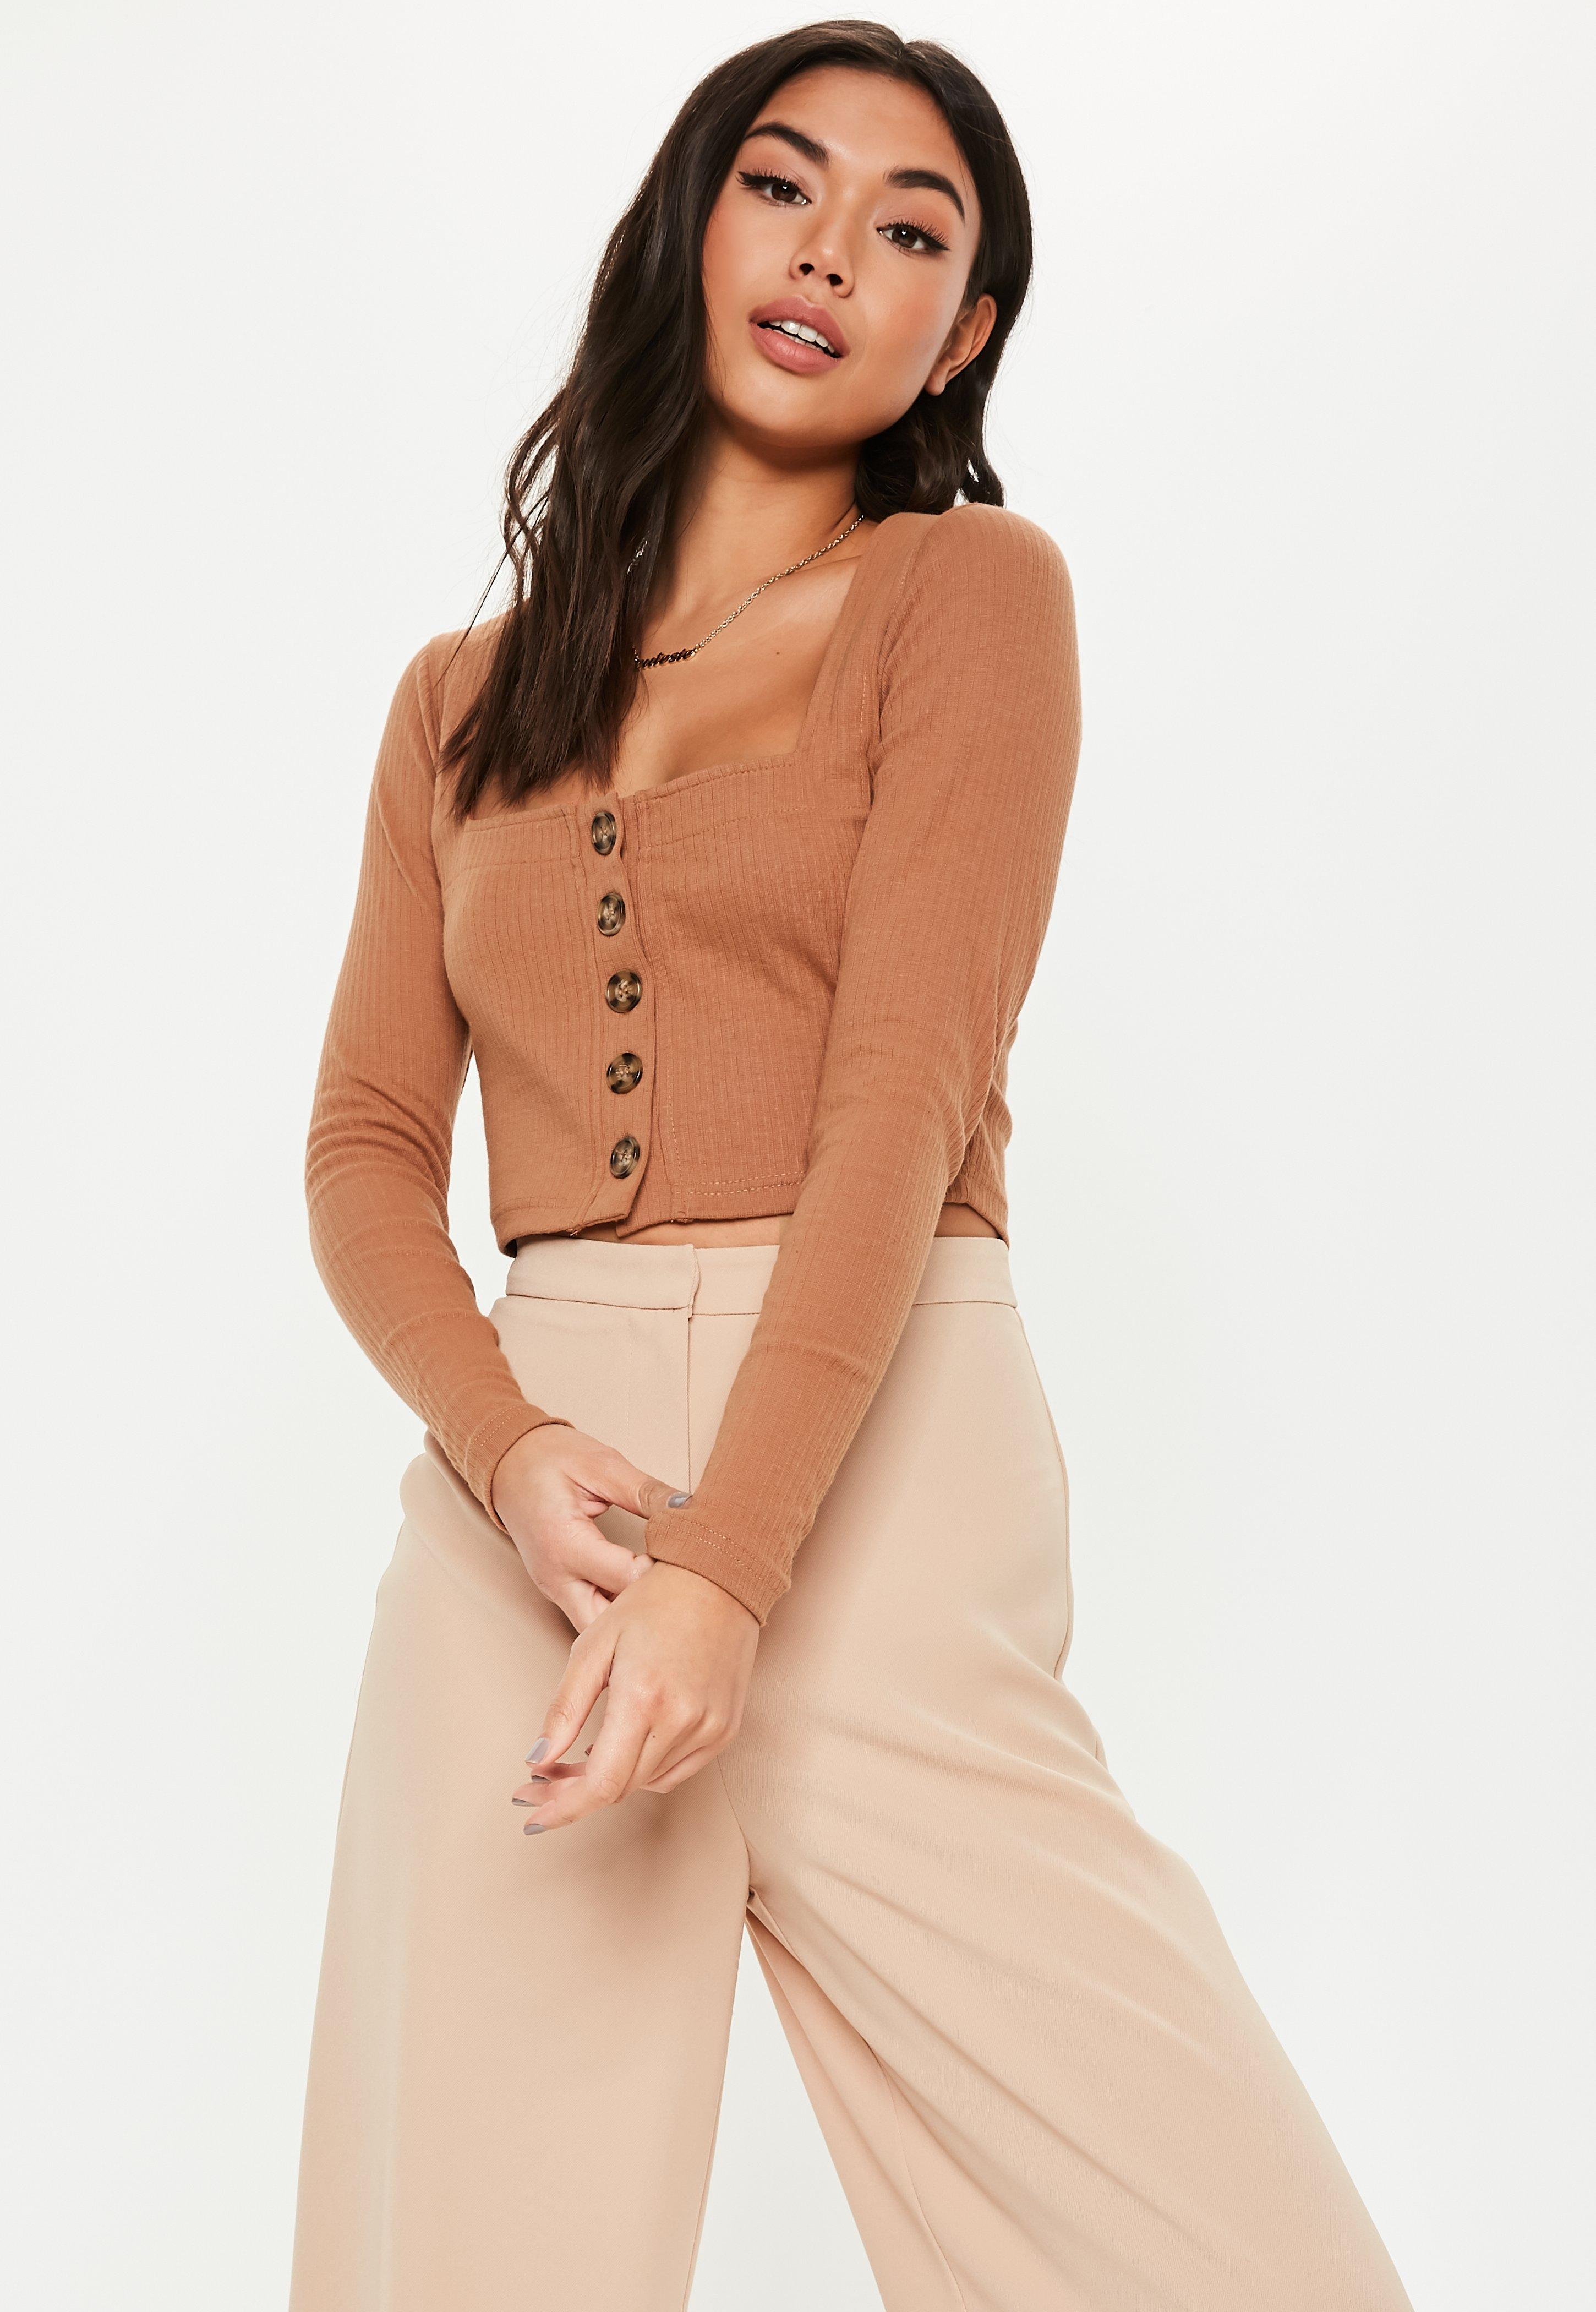 cbee0a120c5 Tan Square Neck Mock Horn Button Long Sleeve Crop Top | Missguided Australia